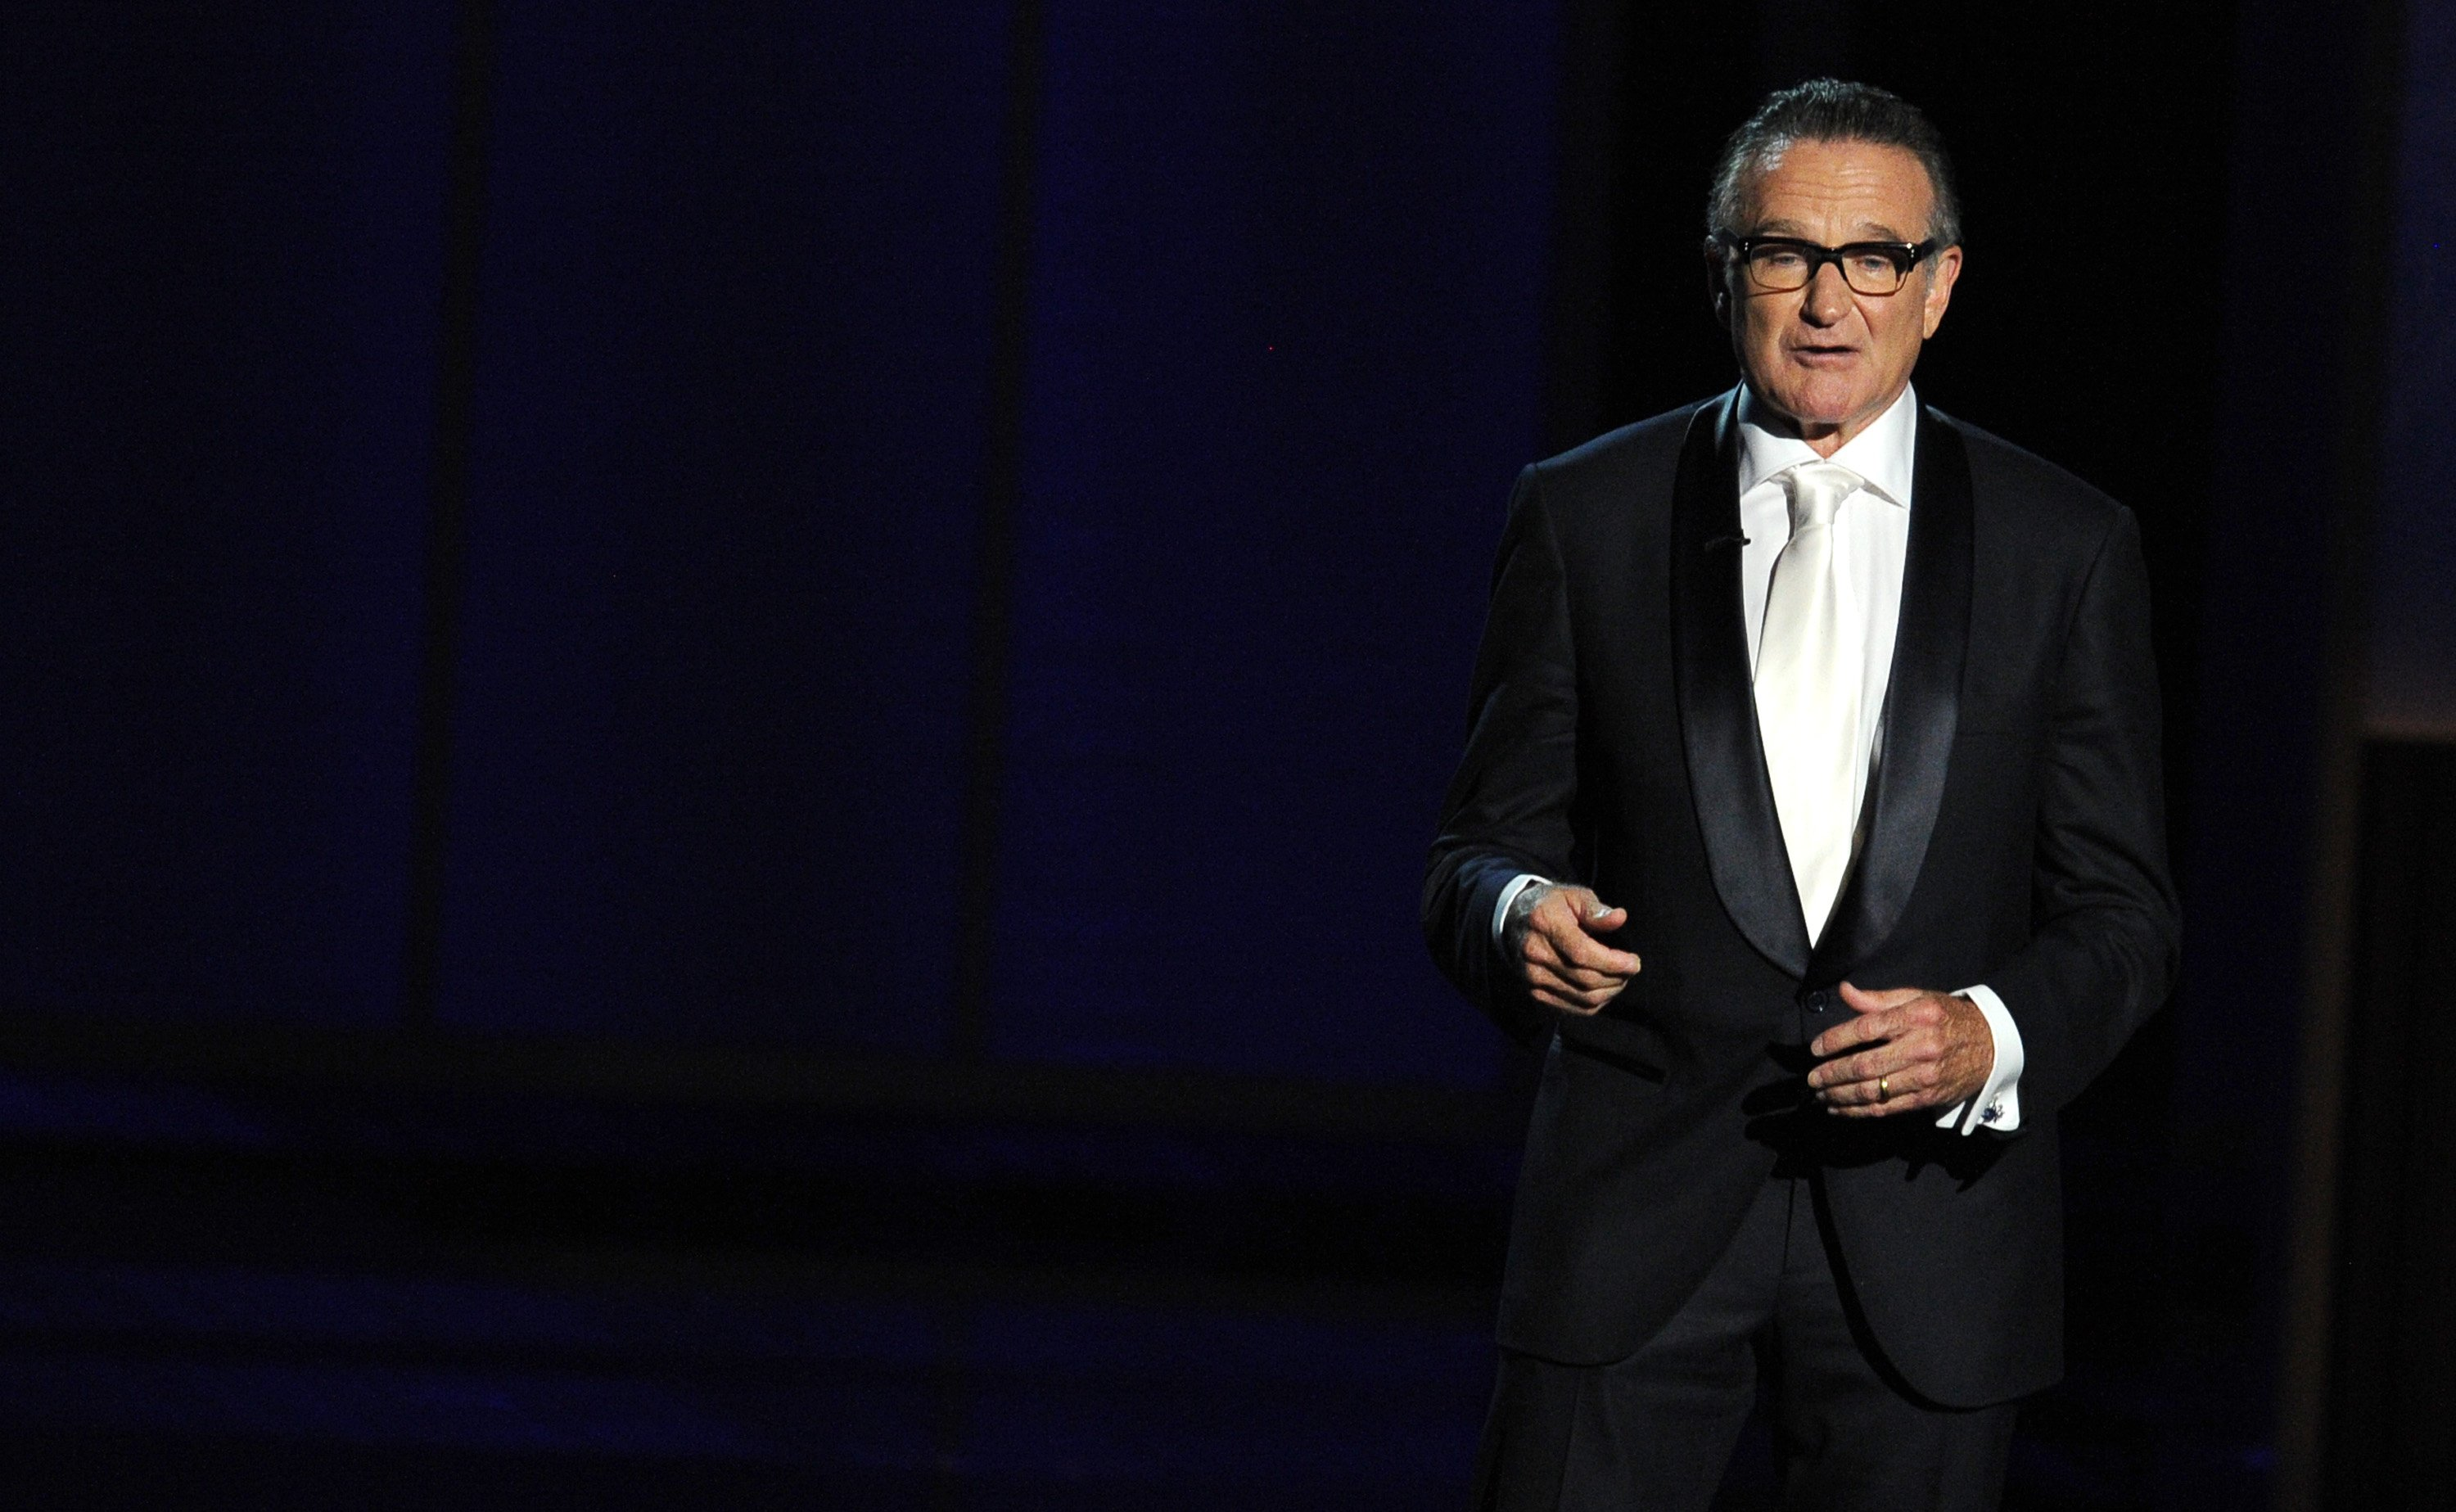 Image Credits: Getty Images / Kevin Winter | Presenter Robin Williams speaks onstage during the 65th Annual Primetime Emmy Awards held at Nokia Theatre L.A. Live on September 22, 2013 in Los Angeles, California.